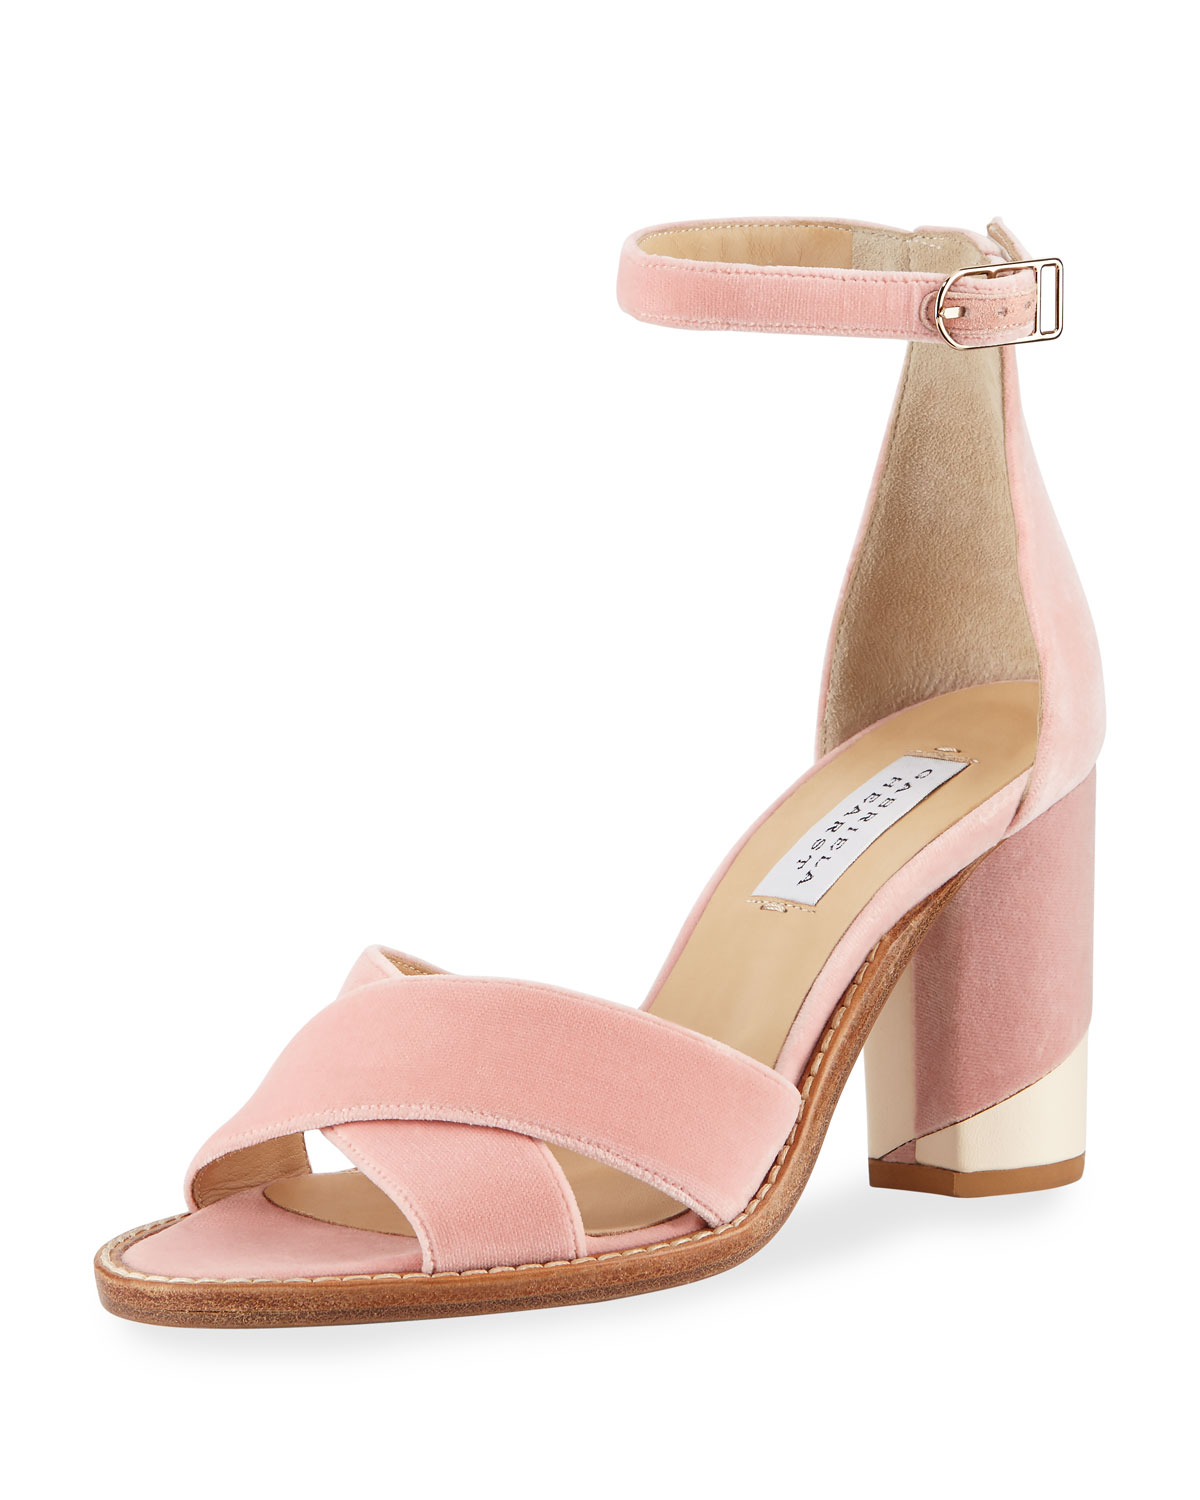 GABRIELA HEARST John velvet sandals Clearance Shop For Free Shipping Official Site SZizwN